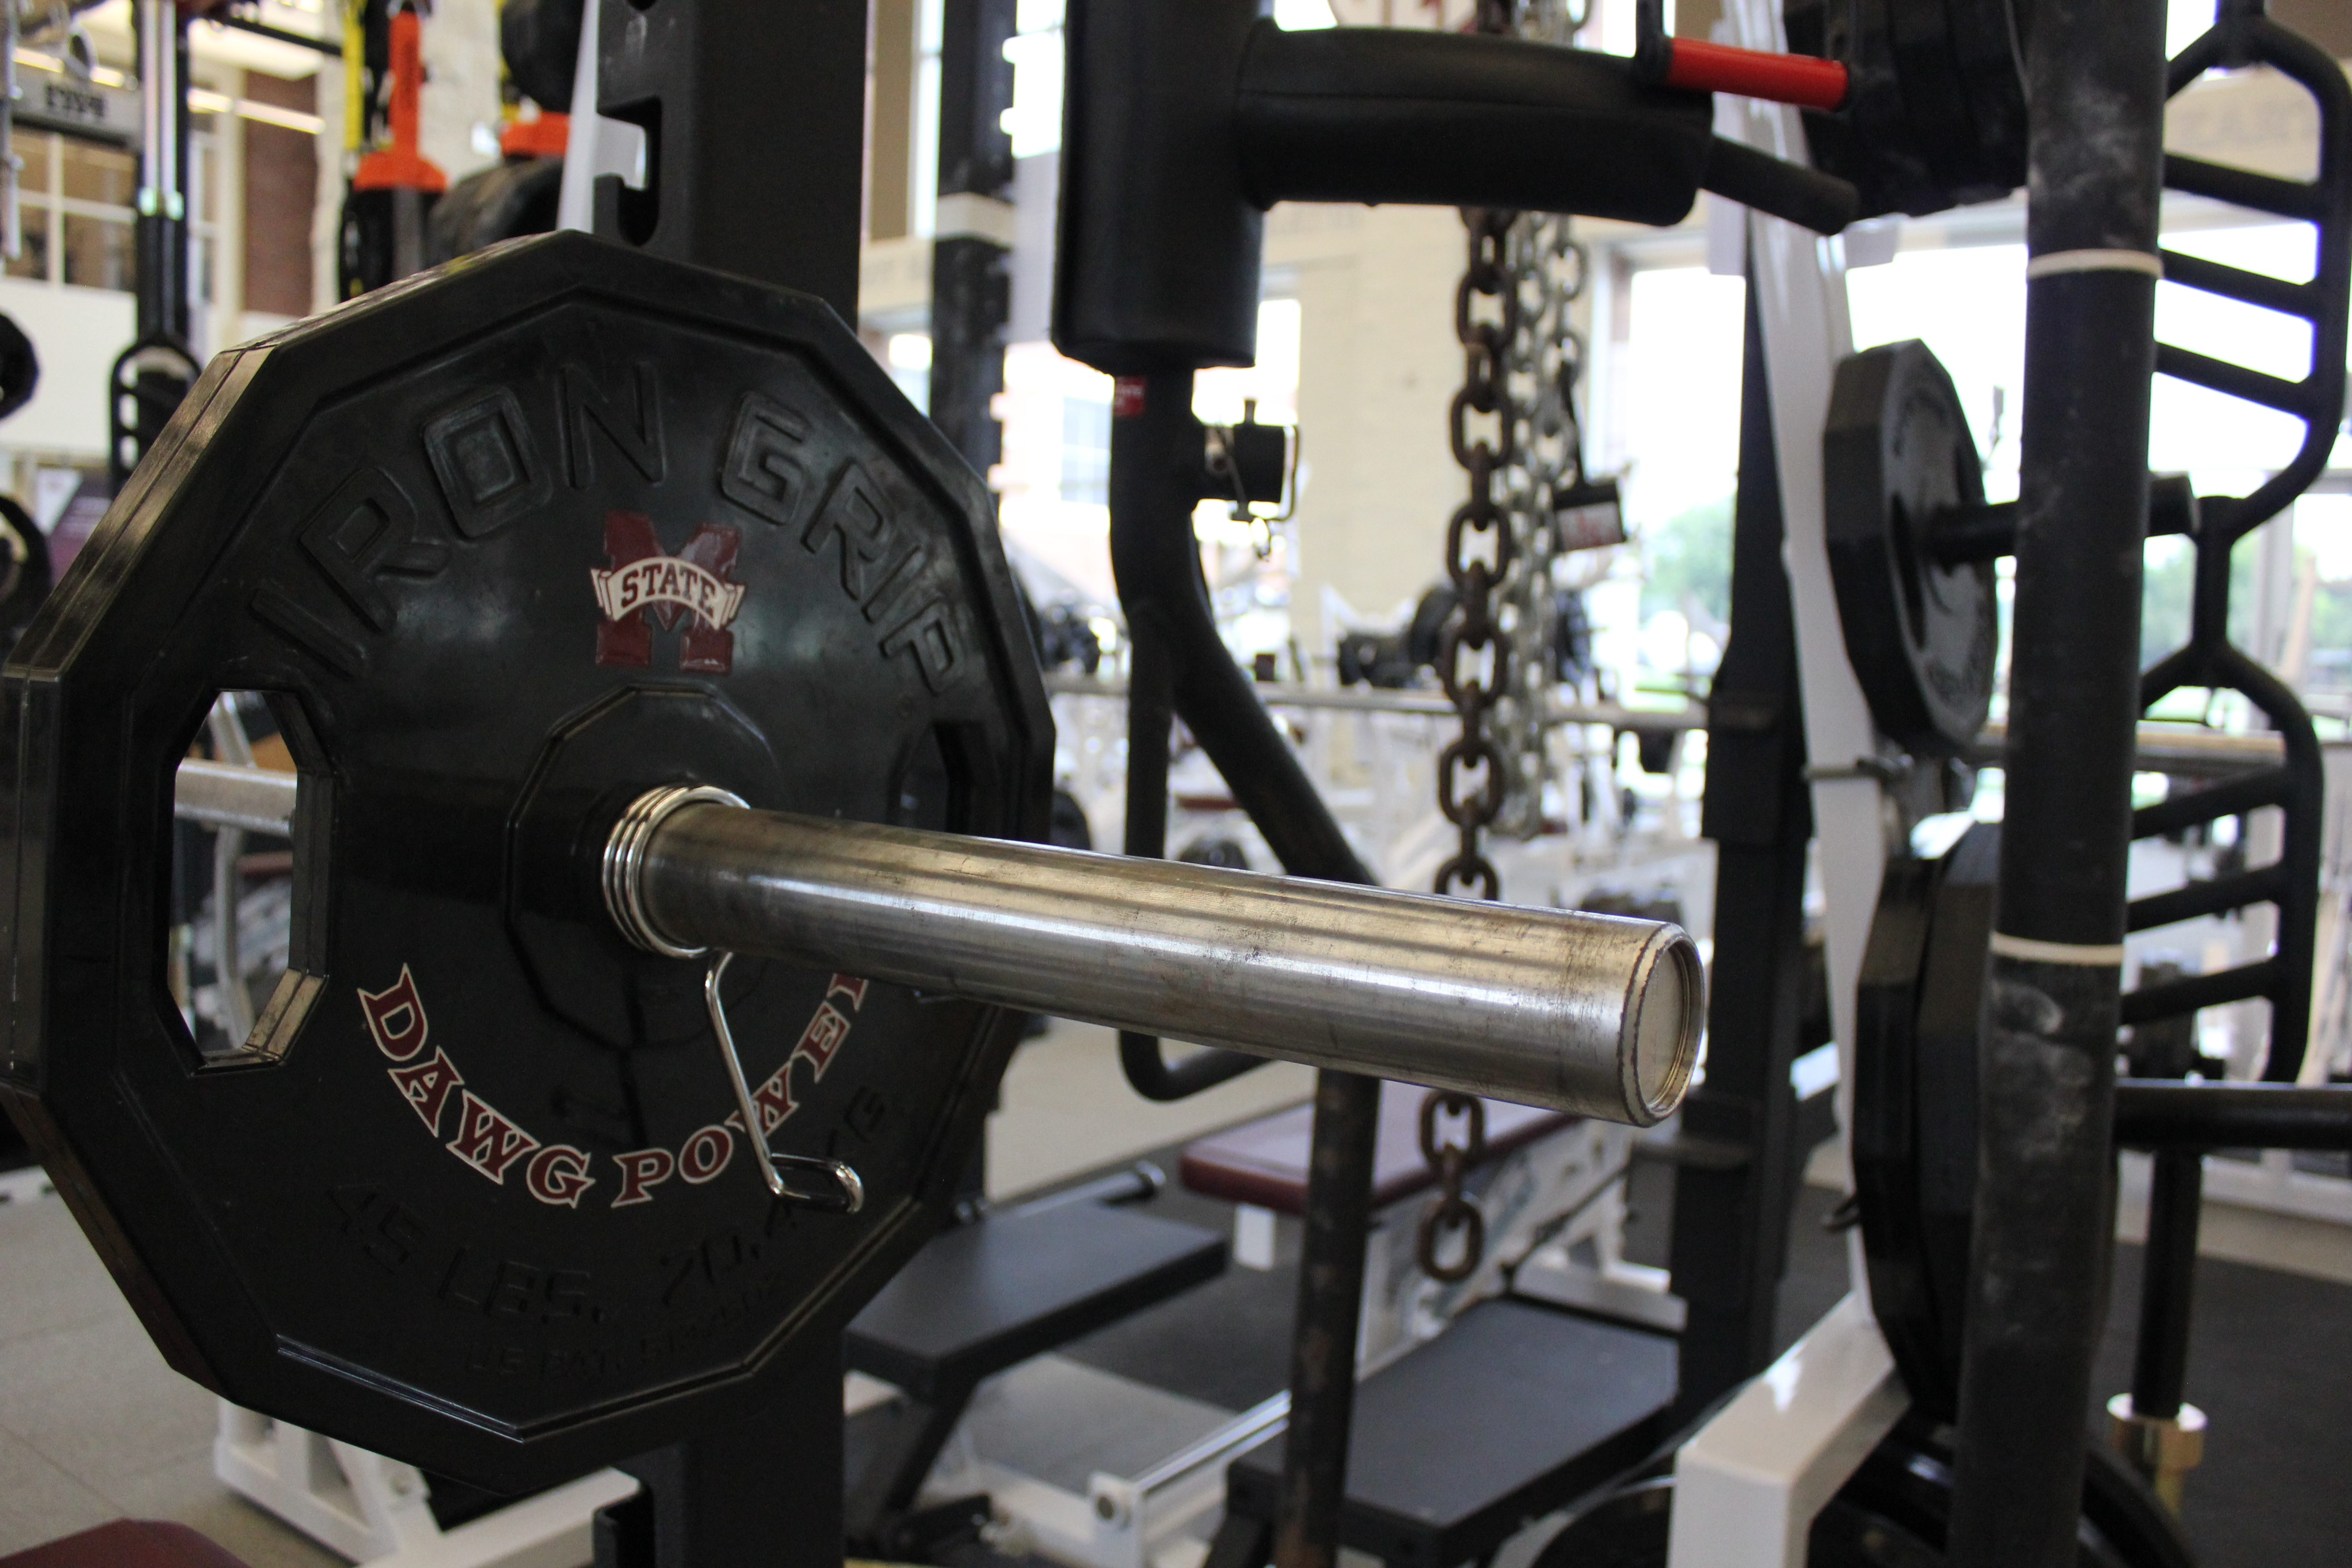 Mississippi State University Bulldogs Strength & Conditioning